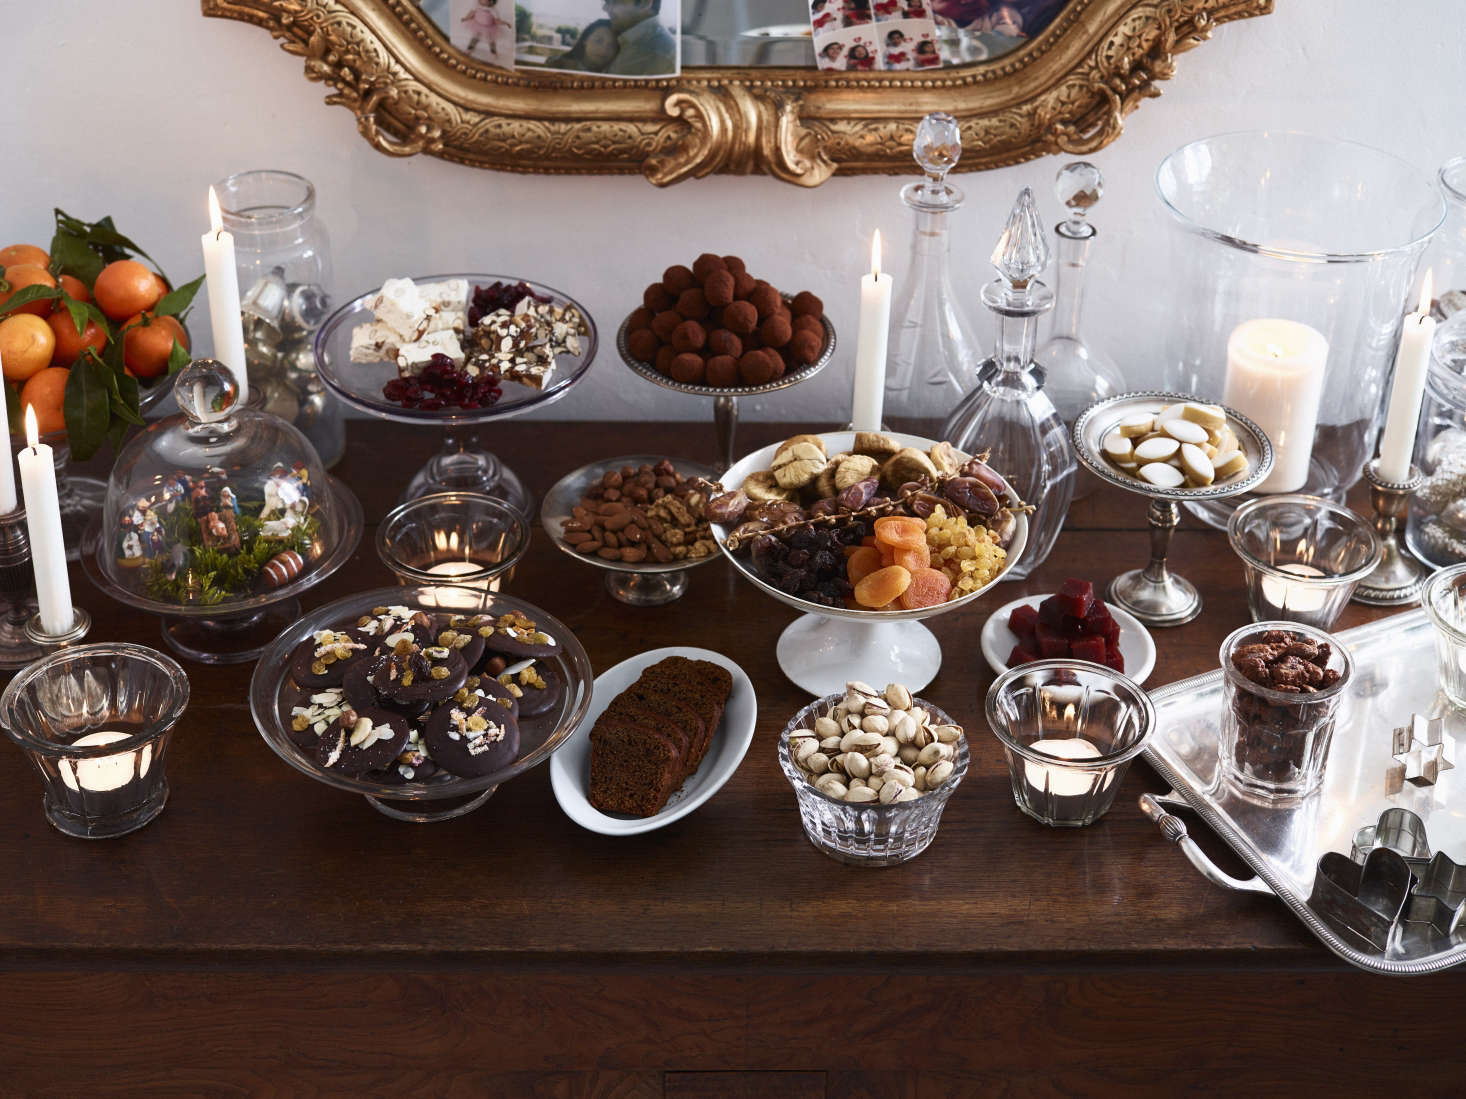 Do as the French do and let sumptuous bowls of food double as decor. Here—following the Provençal tradition of Thirteen Desserts—nuts, dried fruit, and sweets look elegant when displayed in mix-and-match cut glass and silver heirlooms. Photograph by Anson Smart from Christmas in Burgundy: At Home with the Expat Family Behind the Cook's Atelier.